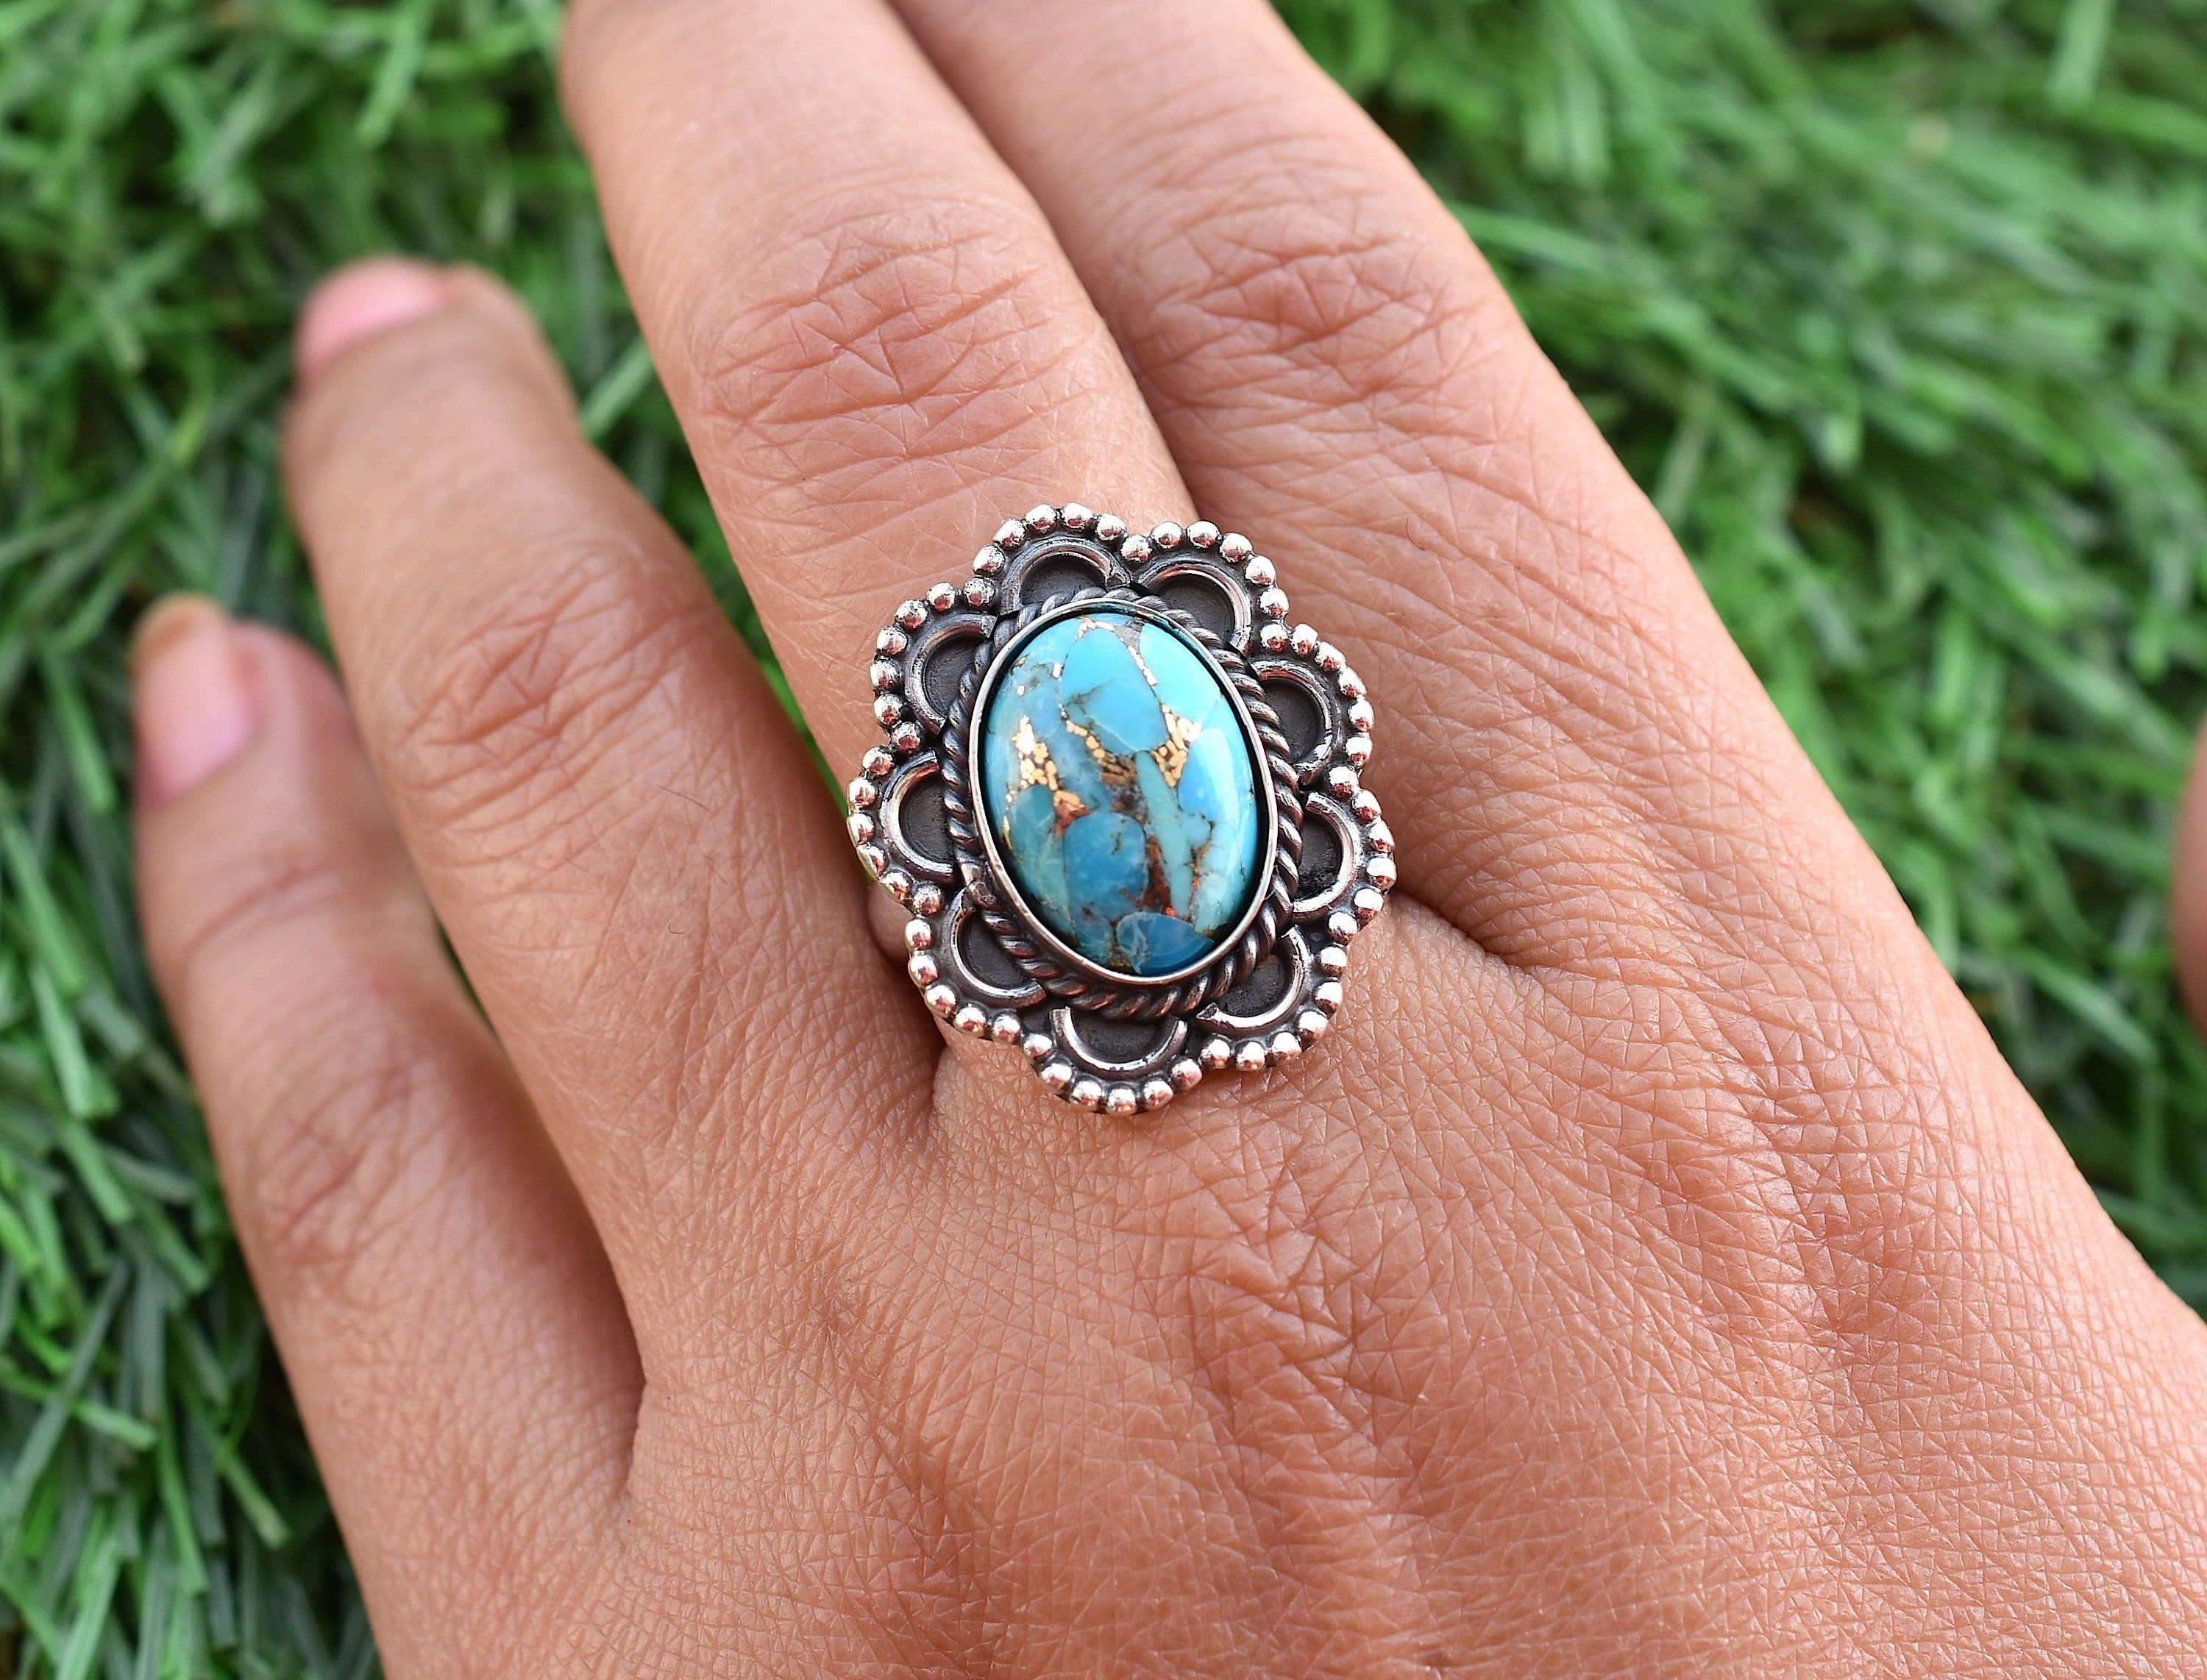 925 Silver Ring Turquoise Jewelry December Birthstone N0 Dainty Ring RT-020 Blue Copper Turquoise Ring Promise Ring Boho Ring